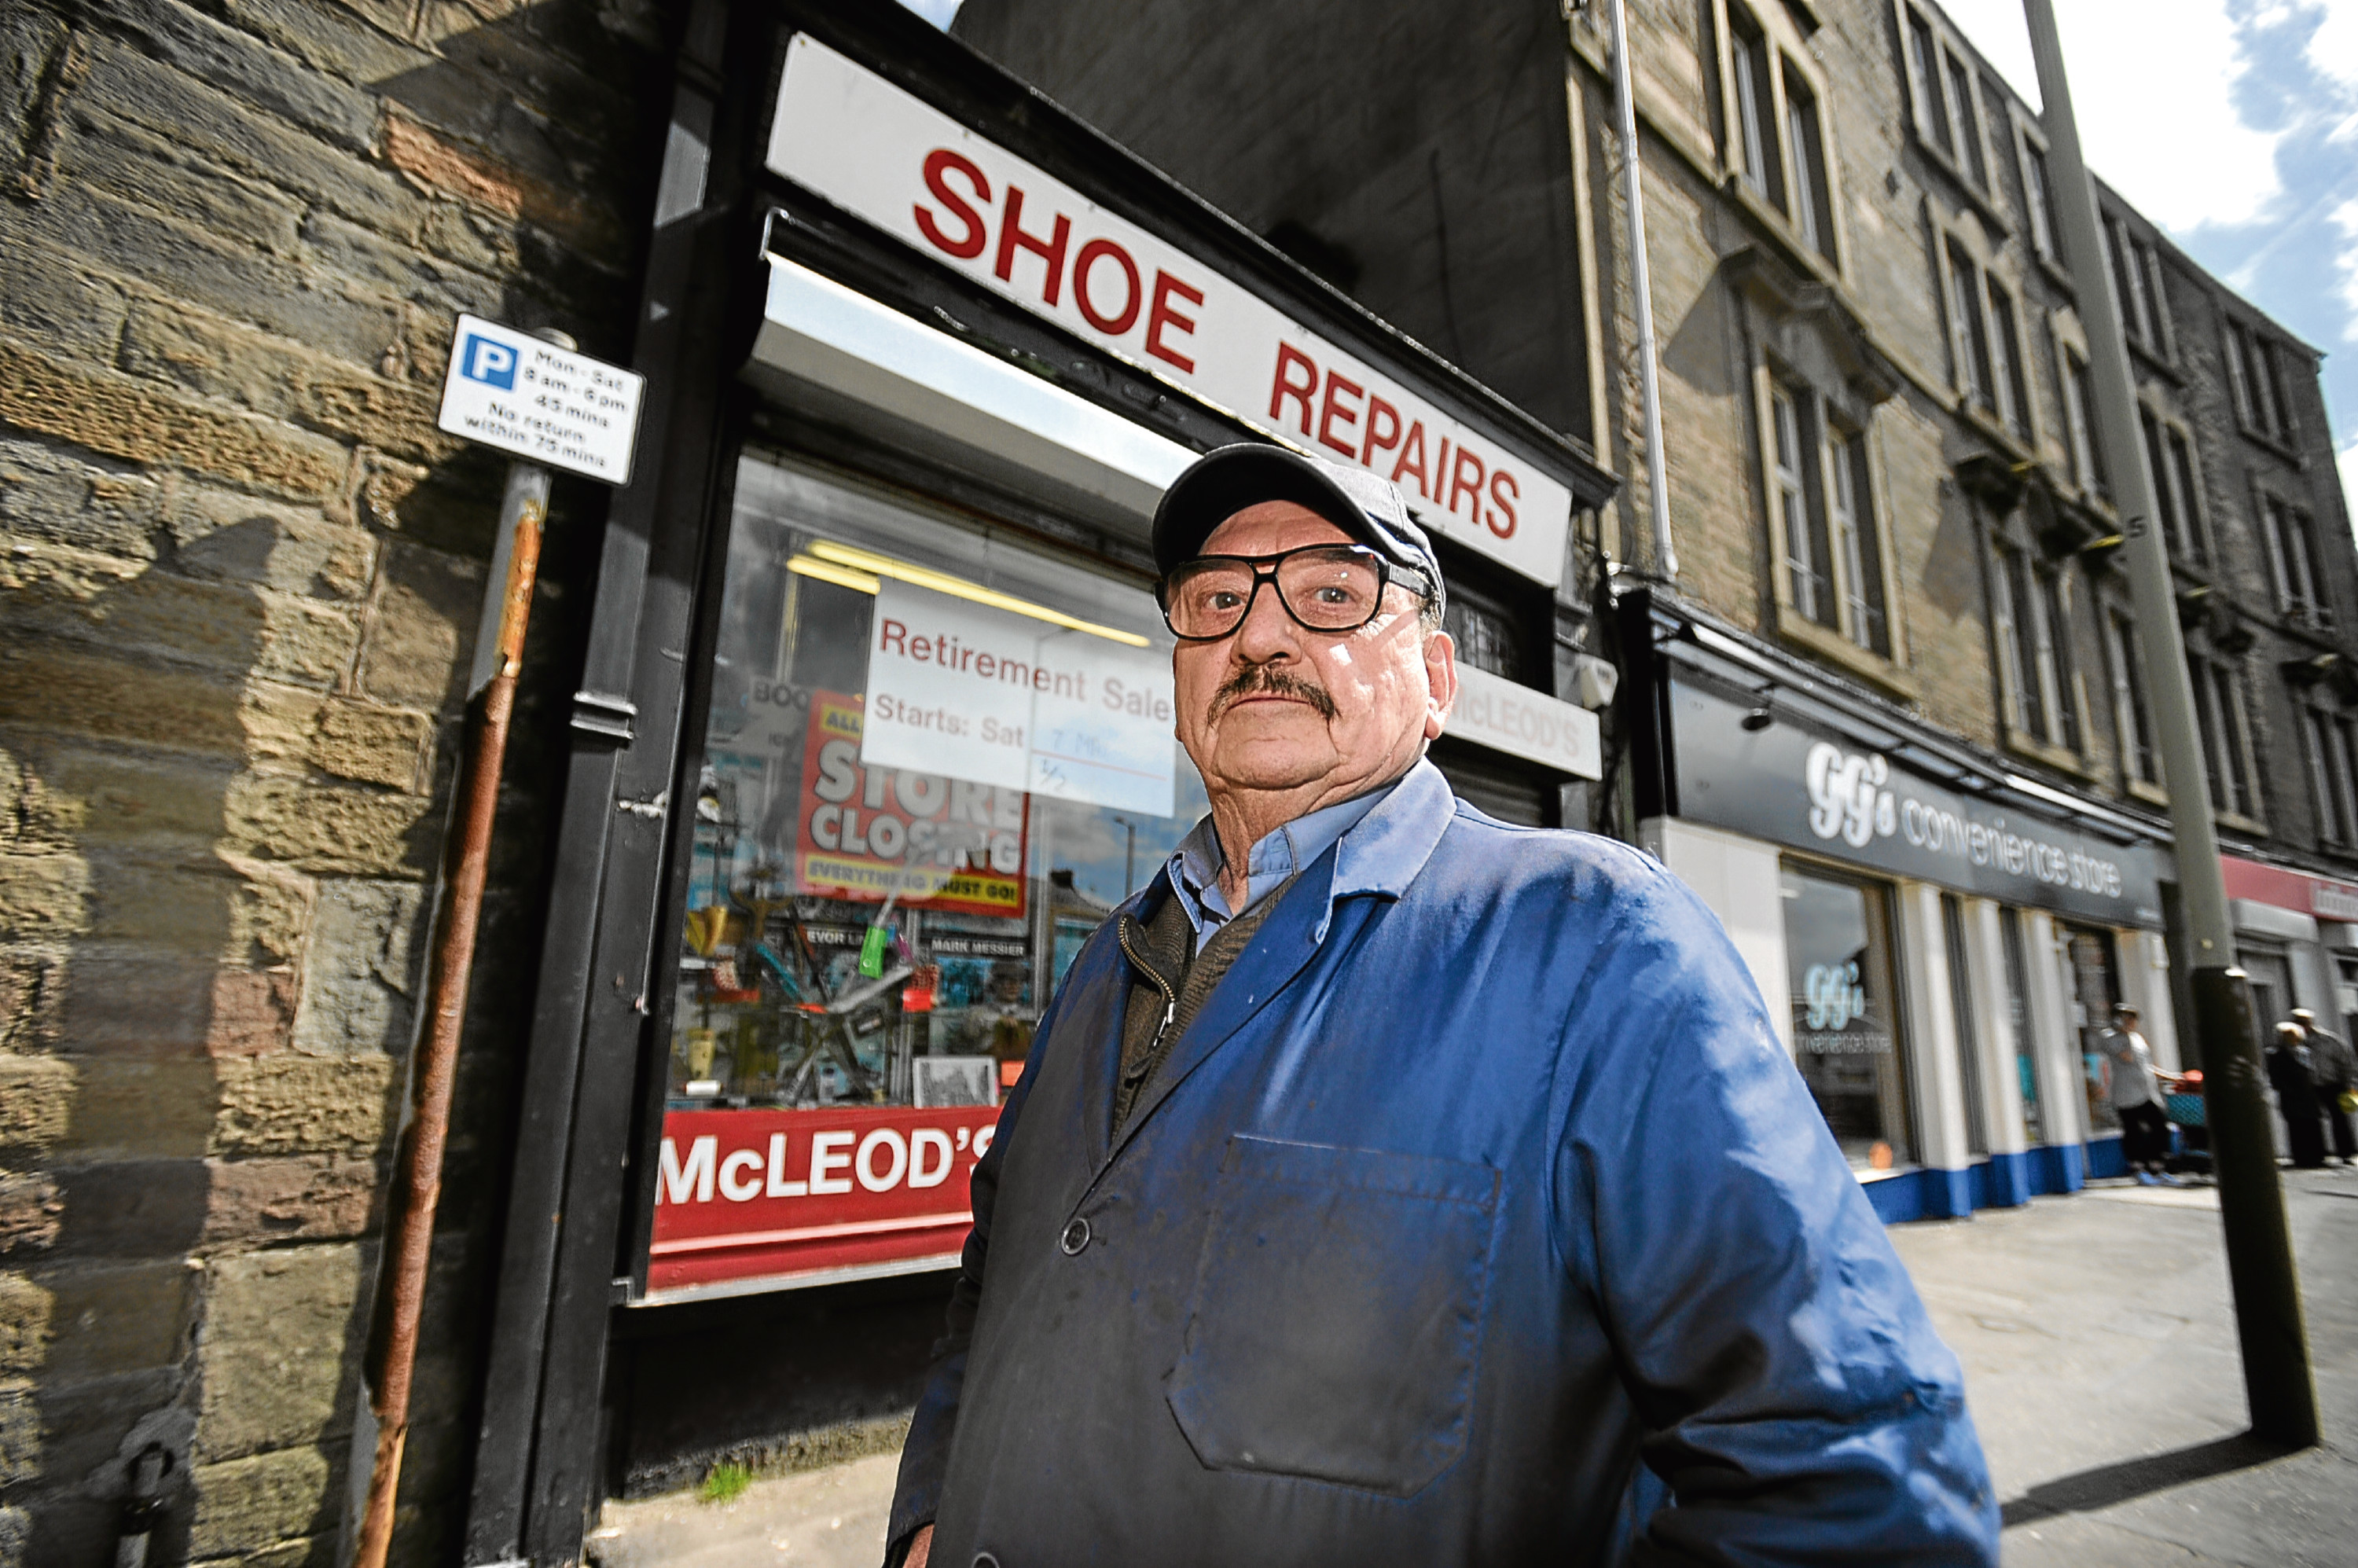 Charles Clark, 81, pictured outside his former shop McLeaod's Show Repair in May last year